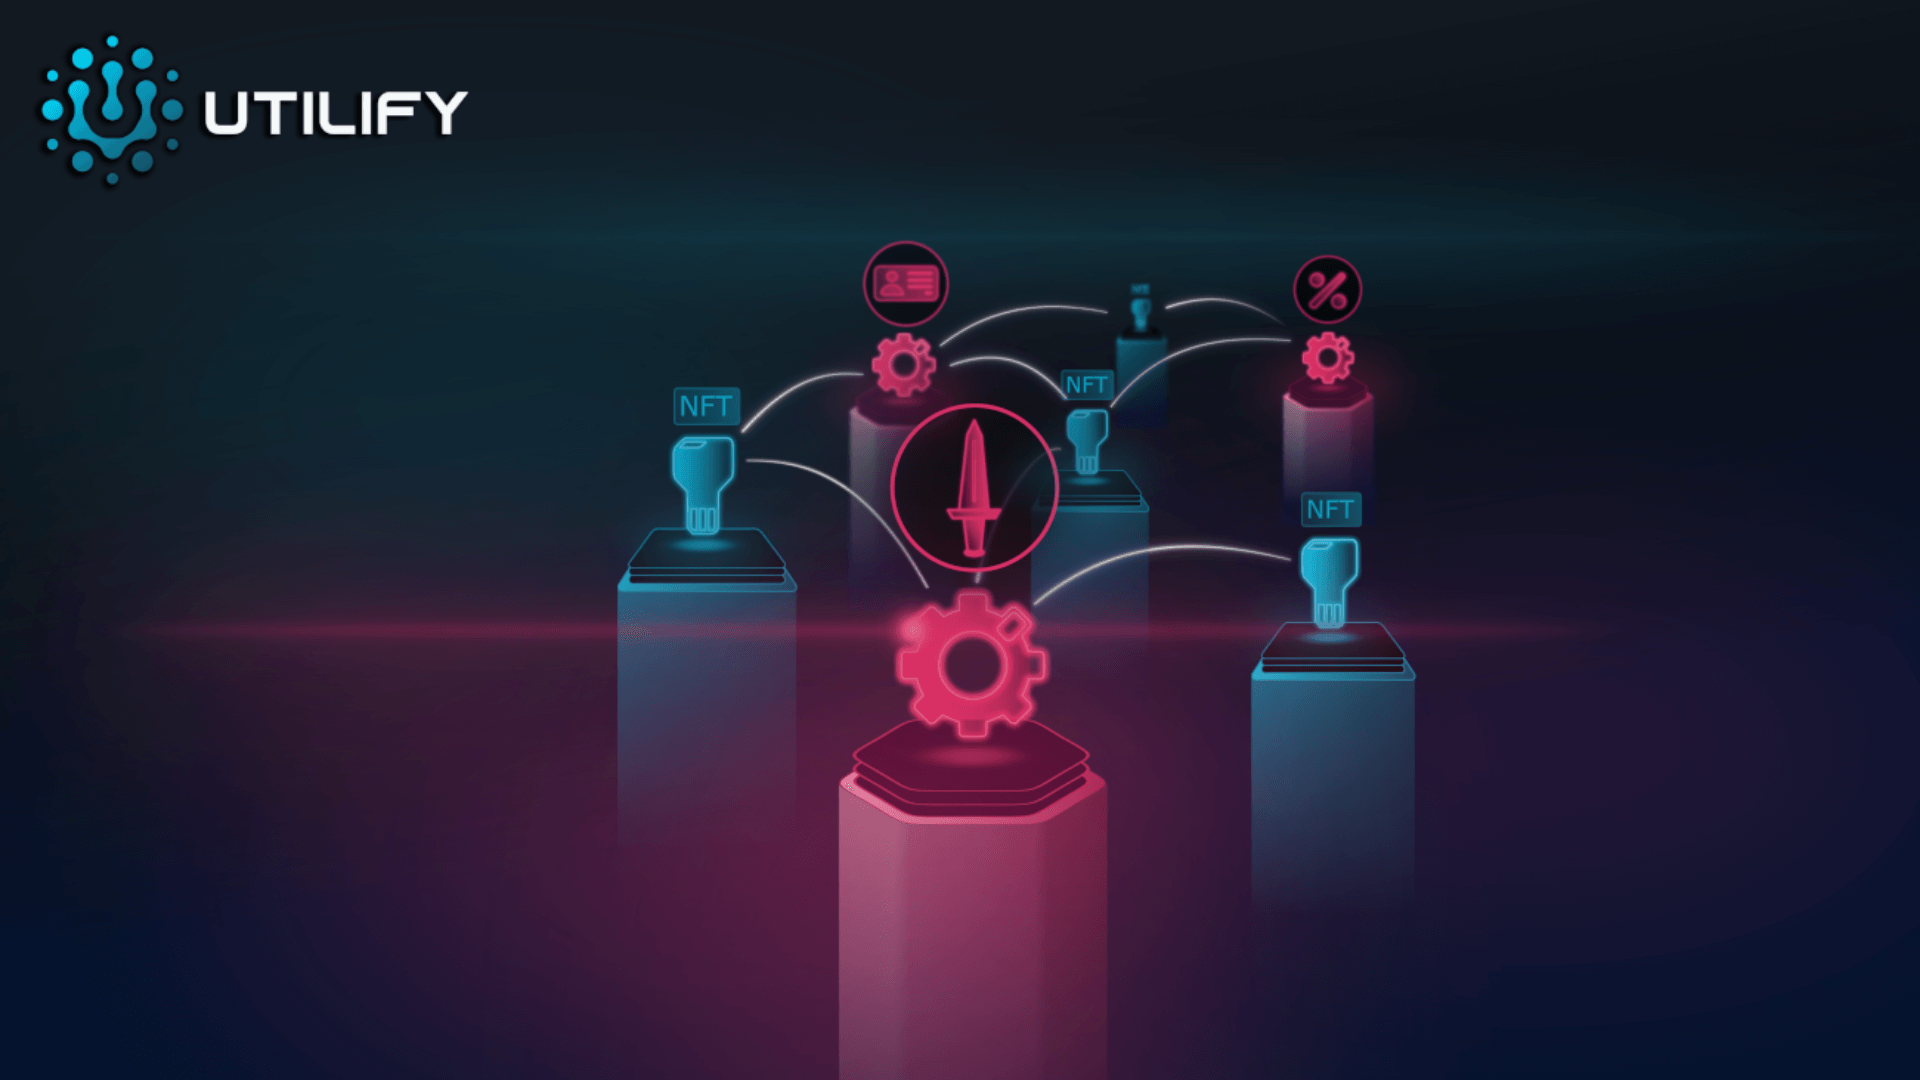 Introducing Utilify: Connecting the Multiverse